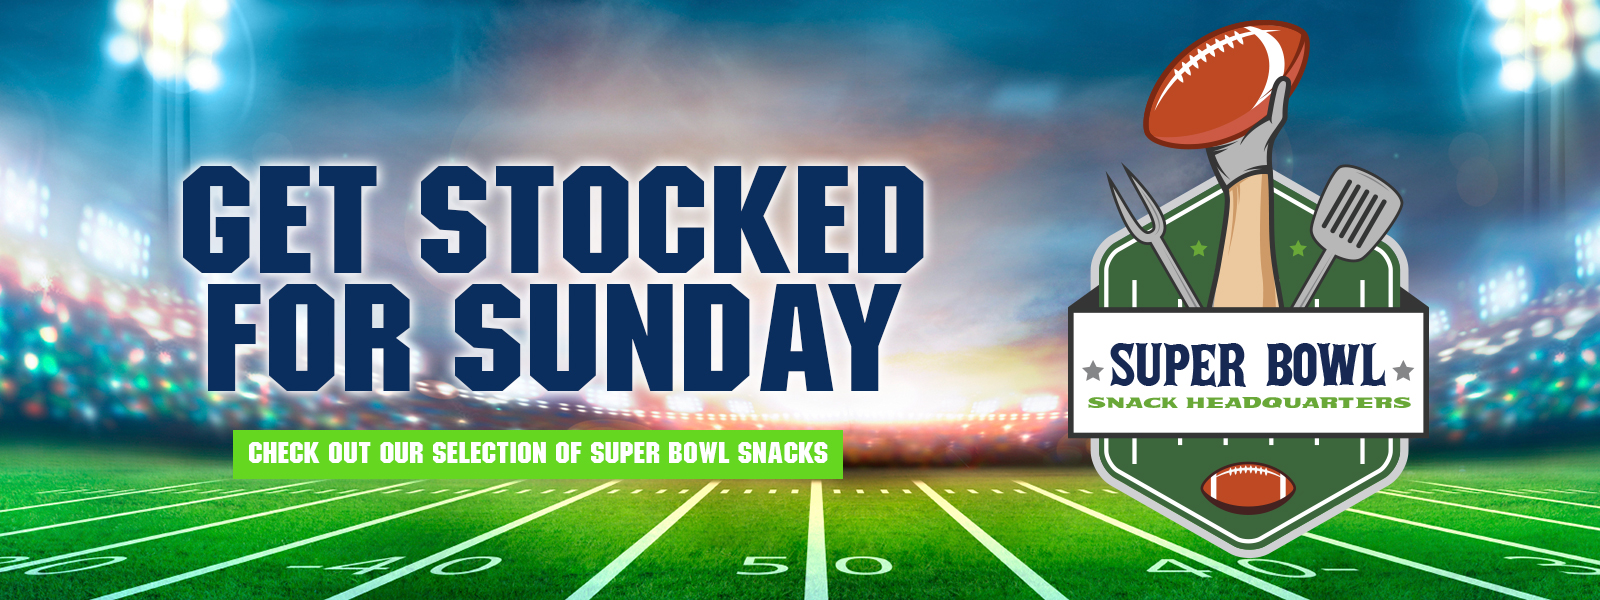 Avondale Food Stores - Your Super Bowl Snack Headquarters